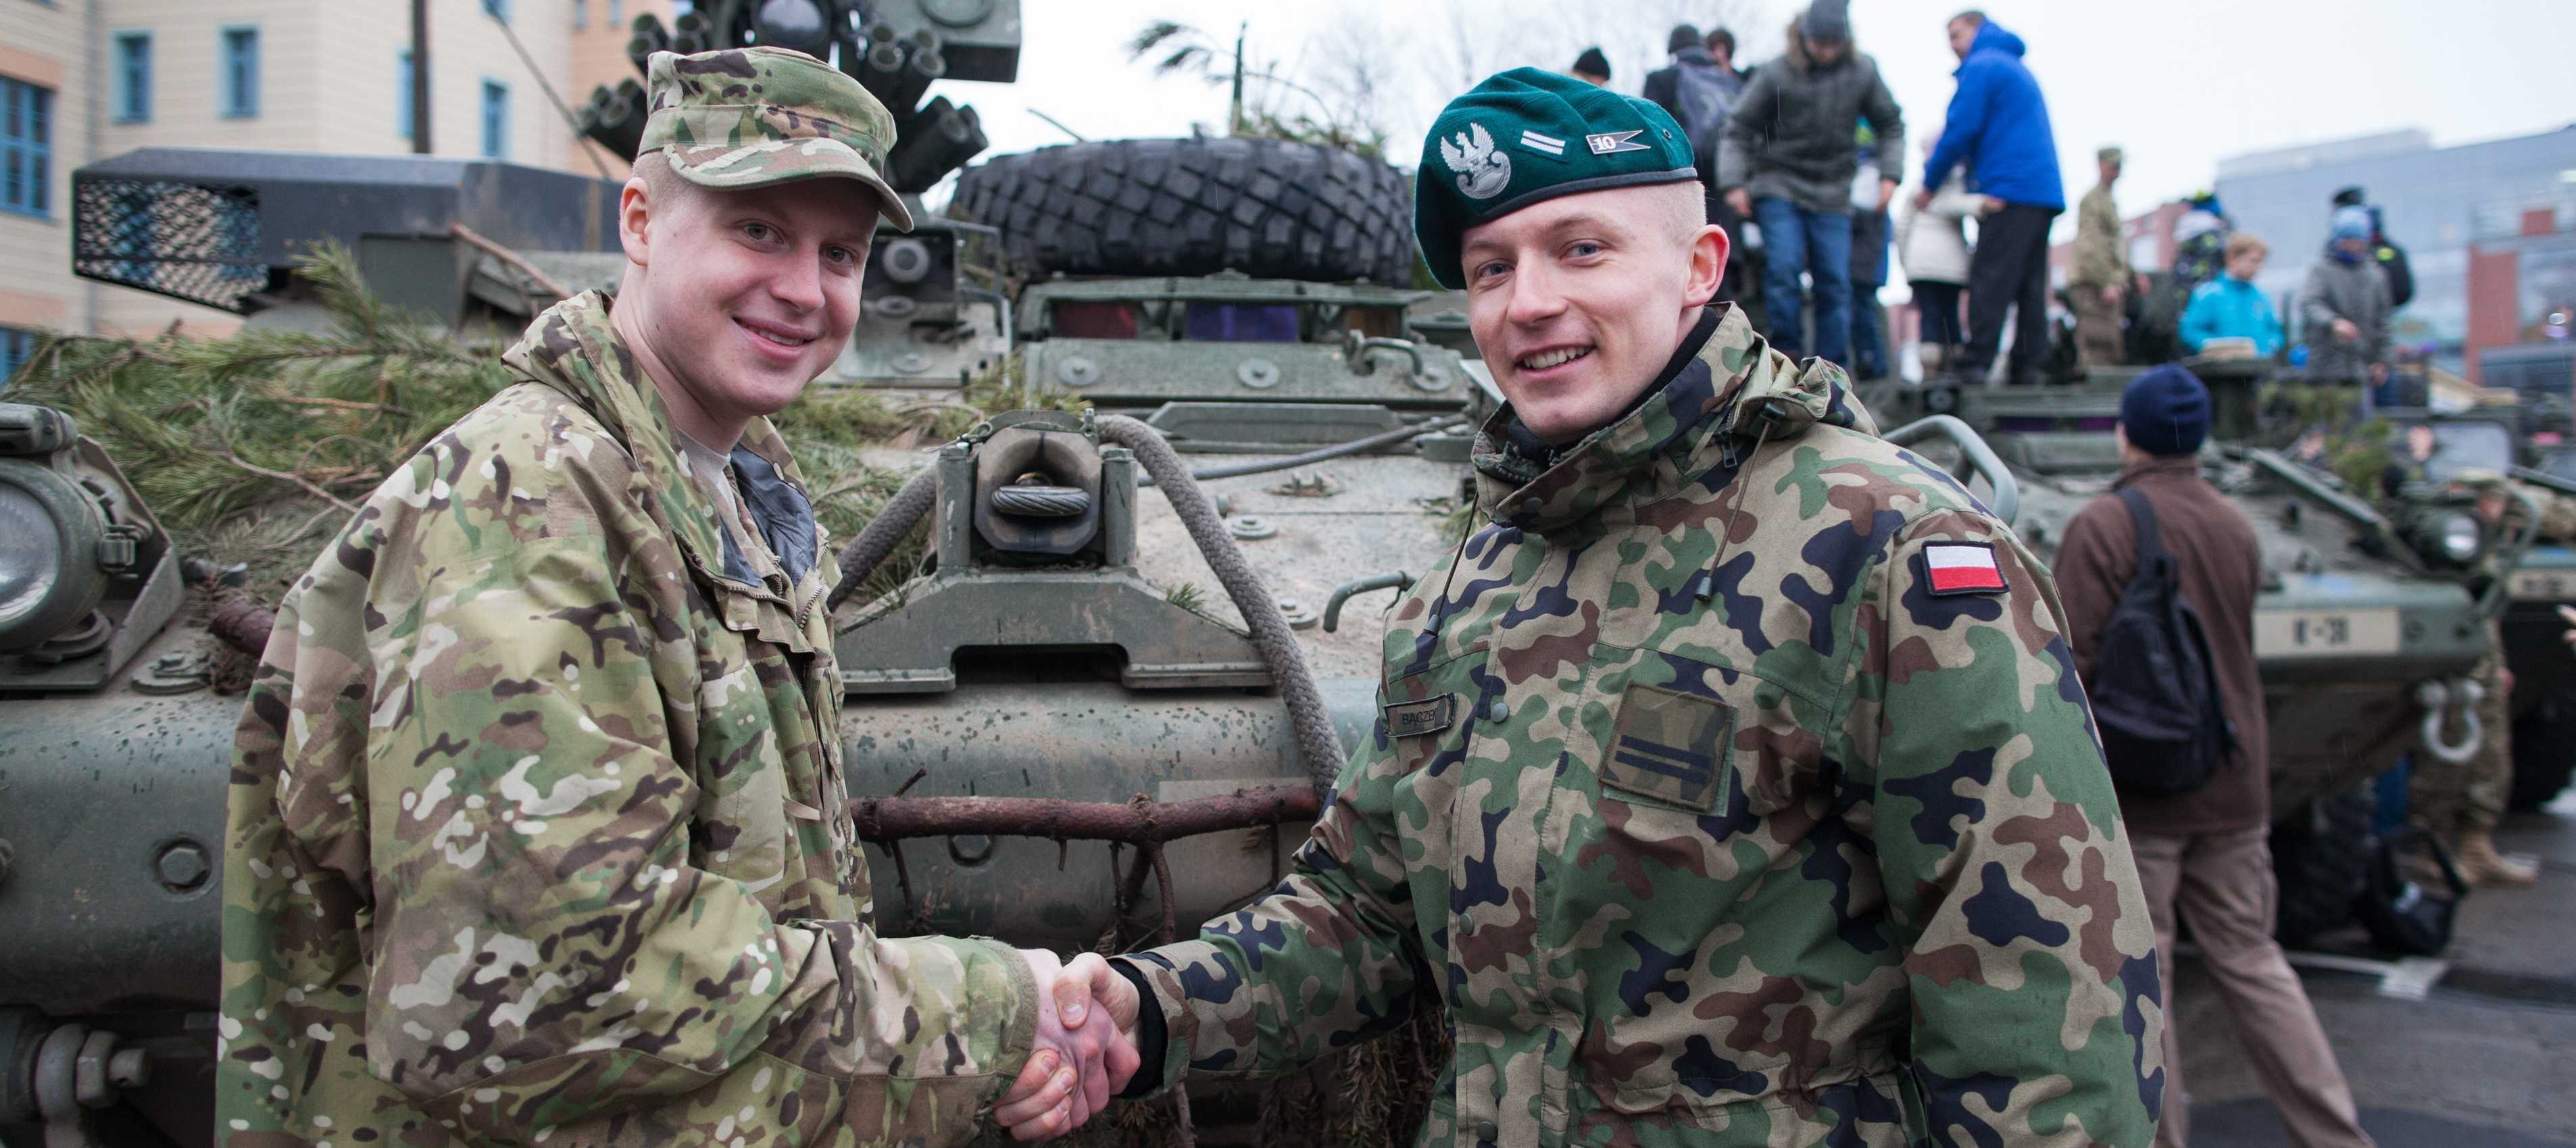 Operation Knightrider – American Troops Meet Residents of Opole